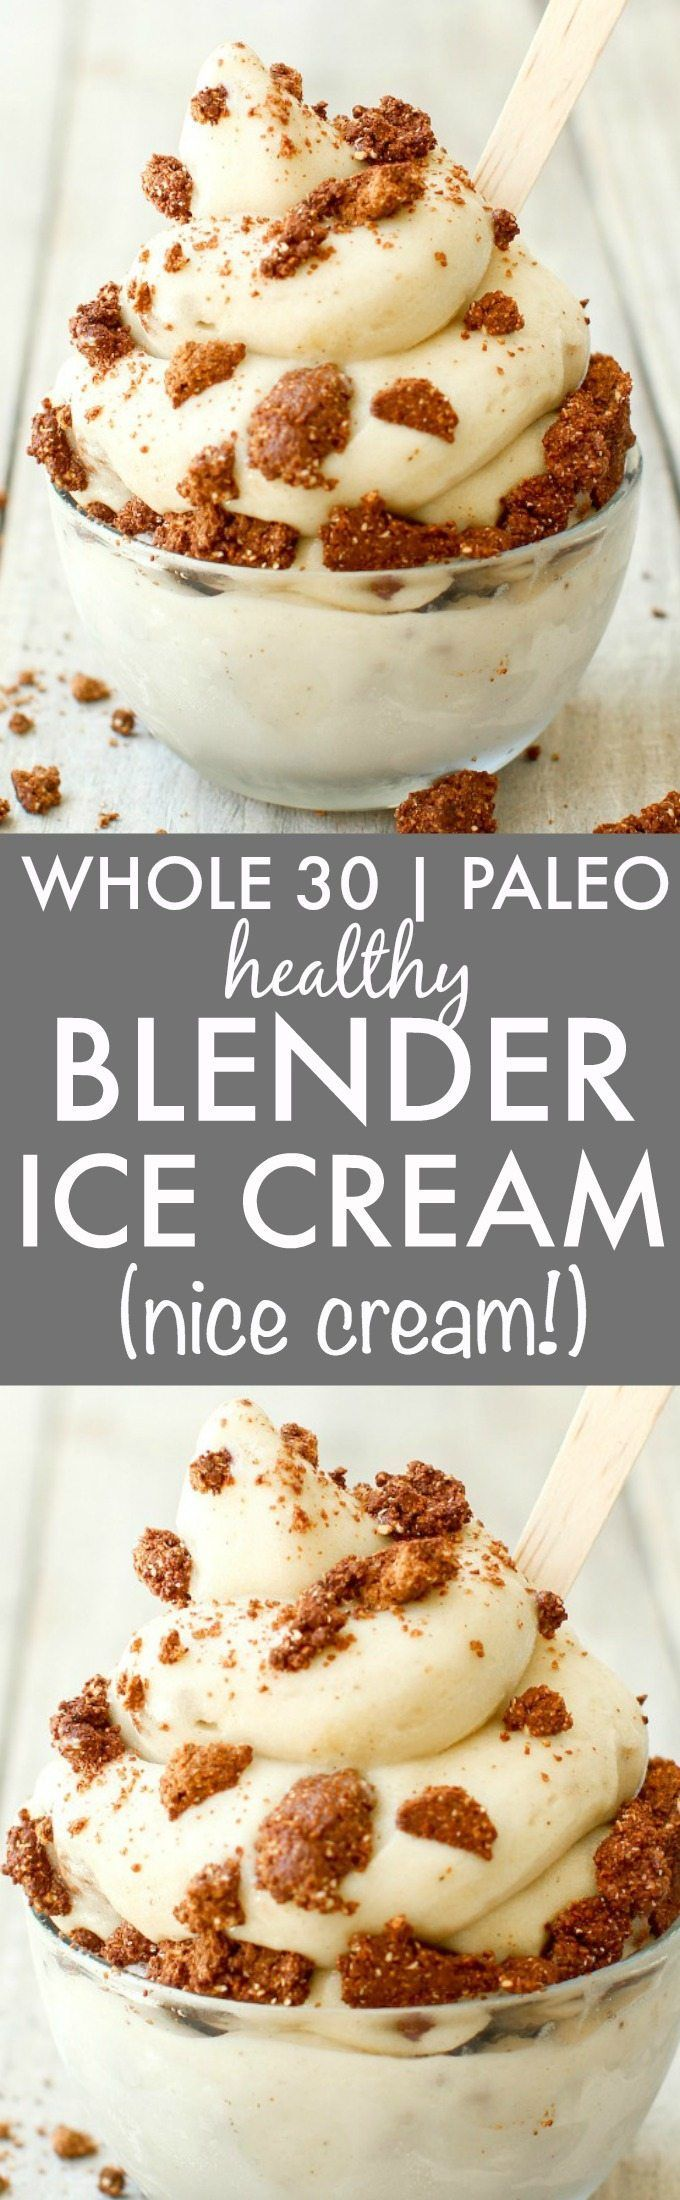 Clean Eating Blender Ice Cream (Whole 30, Paleo, V, GF)- Whole30 friendly fruit based nice cream made in a blender- NO cream or butter and completely dairy free and sugar free! {vegan, gluten free, paleo recipe}- thebigmansworld.com